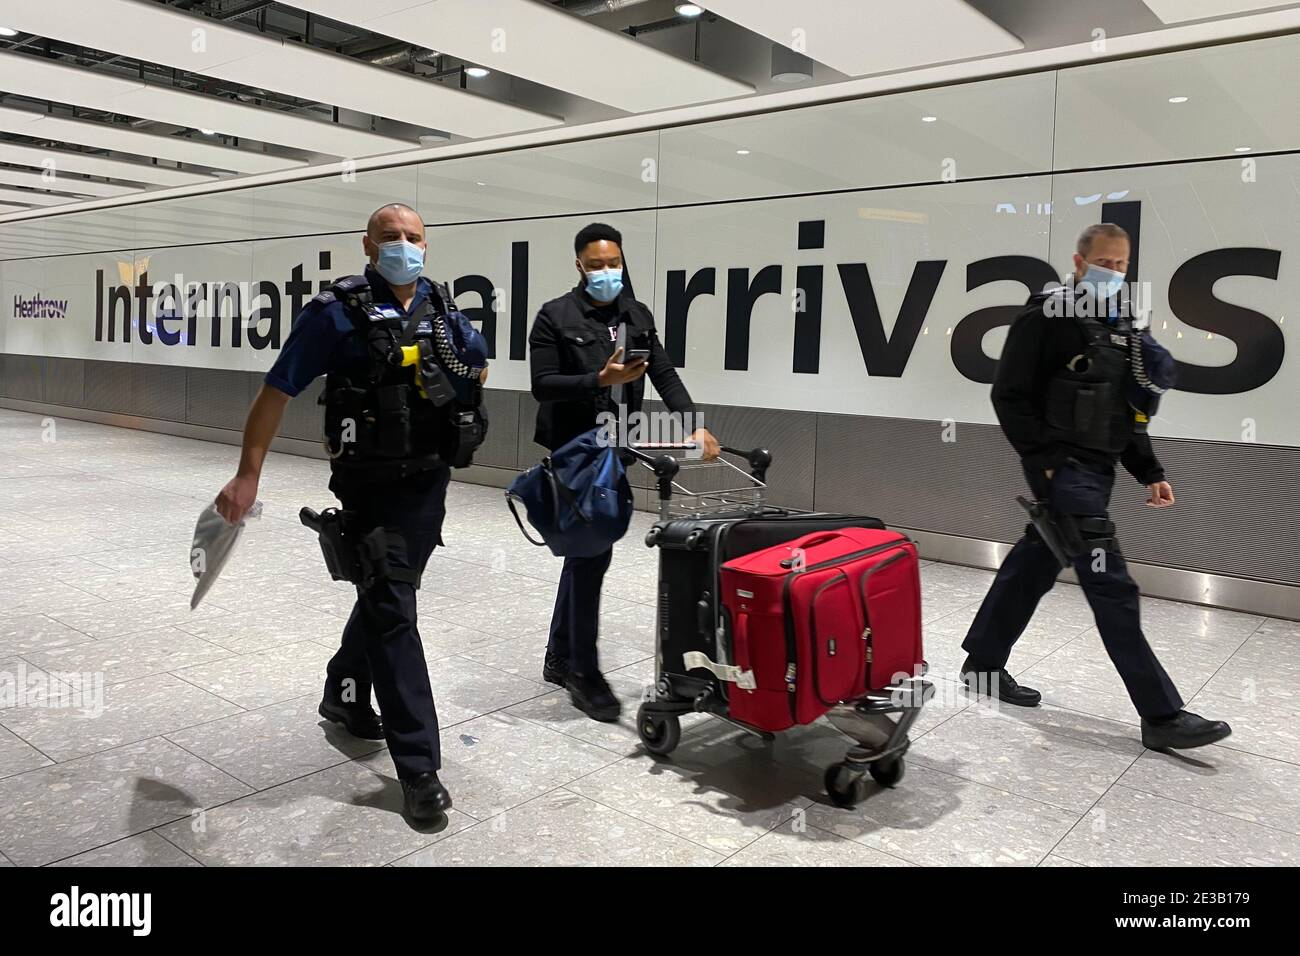 A passenger walks with police officers while pushing a trolley through the Arrival Hall of Terminal 5 at London's Heathrow Airport after arriving into the UK following the suspension of the travel corridors. Passengers arriving from anywhere outside the UK, Ireland, the Channel Islands or the Isle of Man must have proof of a negative coronavirus test and self-isolate for 10 days. Picture date: Monday January 18, 2021. Stock Photo